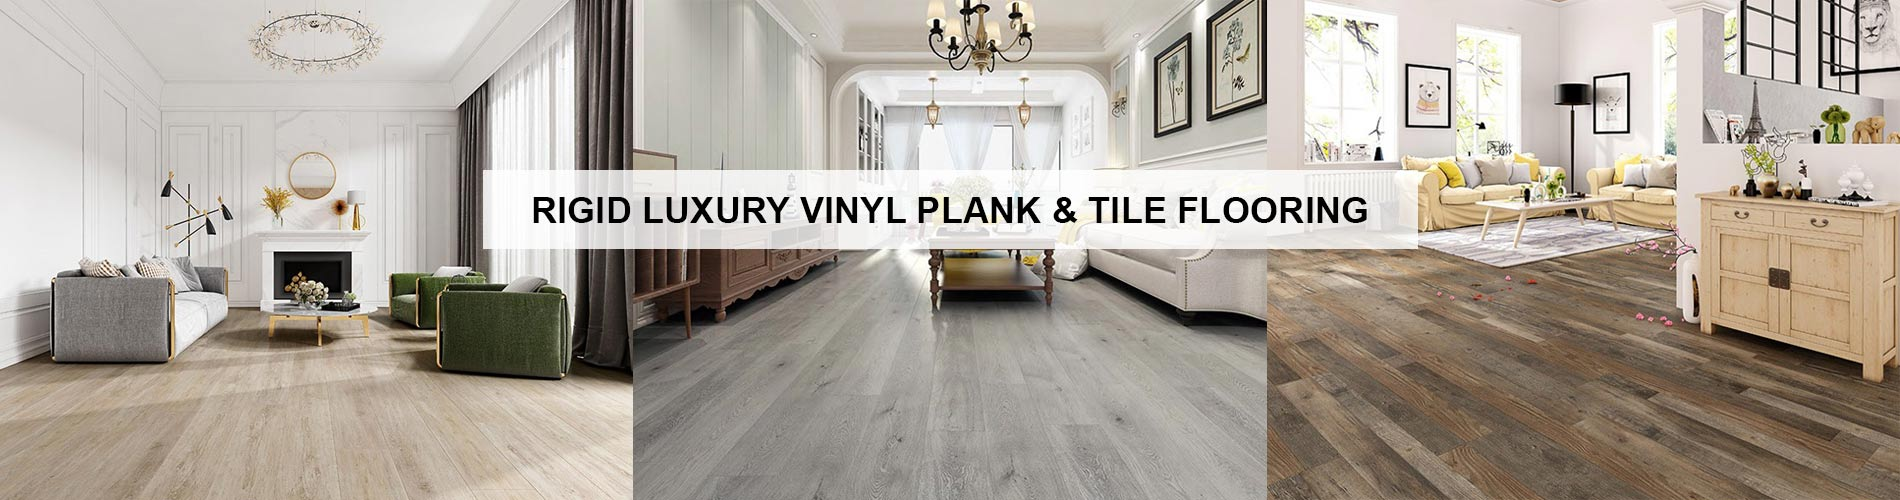 LuxePlank - Rigid Luxury Vinyl Plank & Tile Flooring